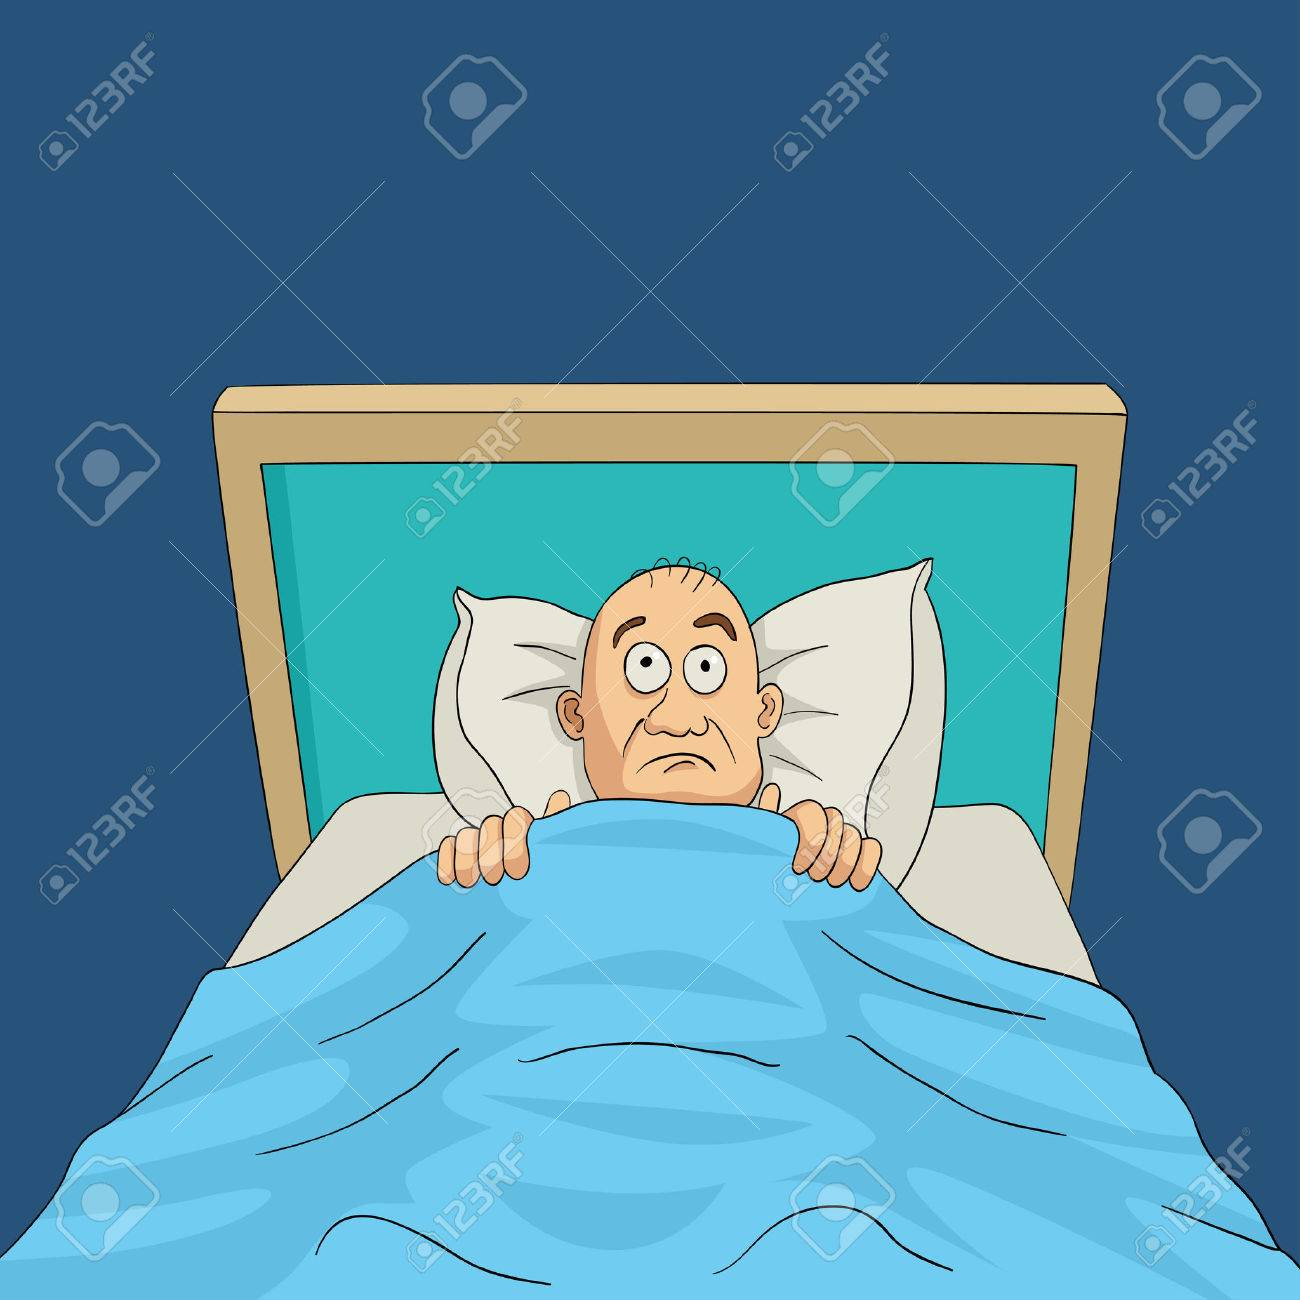 Cartoon illustration of a man on bed with eyes wide open, insomnia, nightmare theme - 52426355